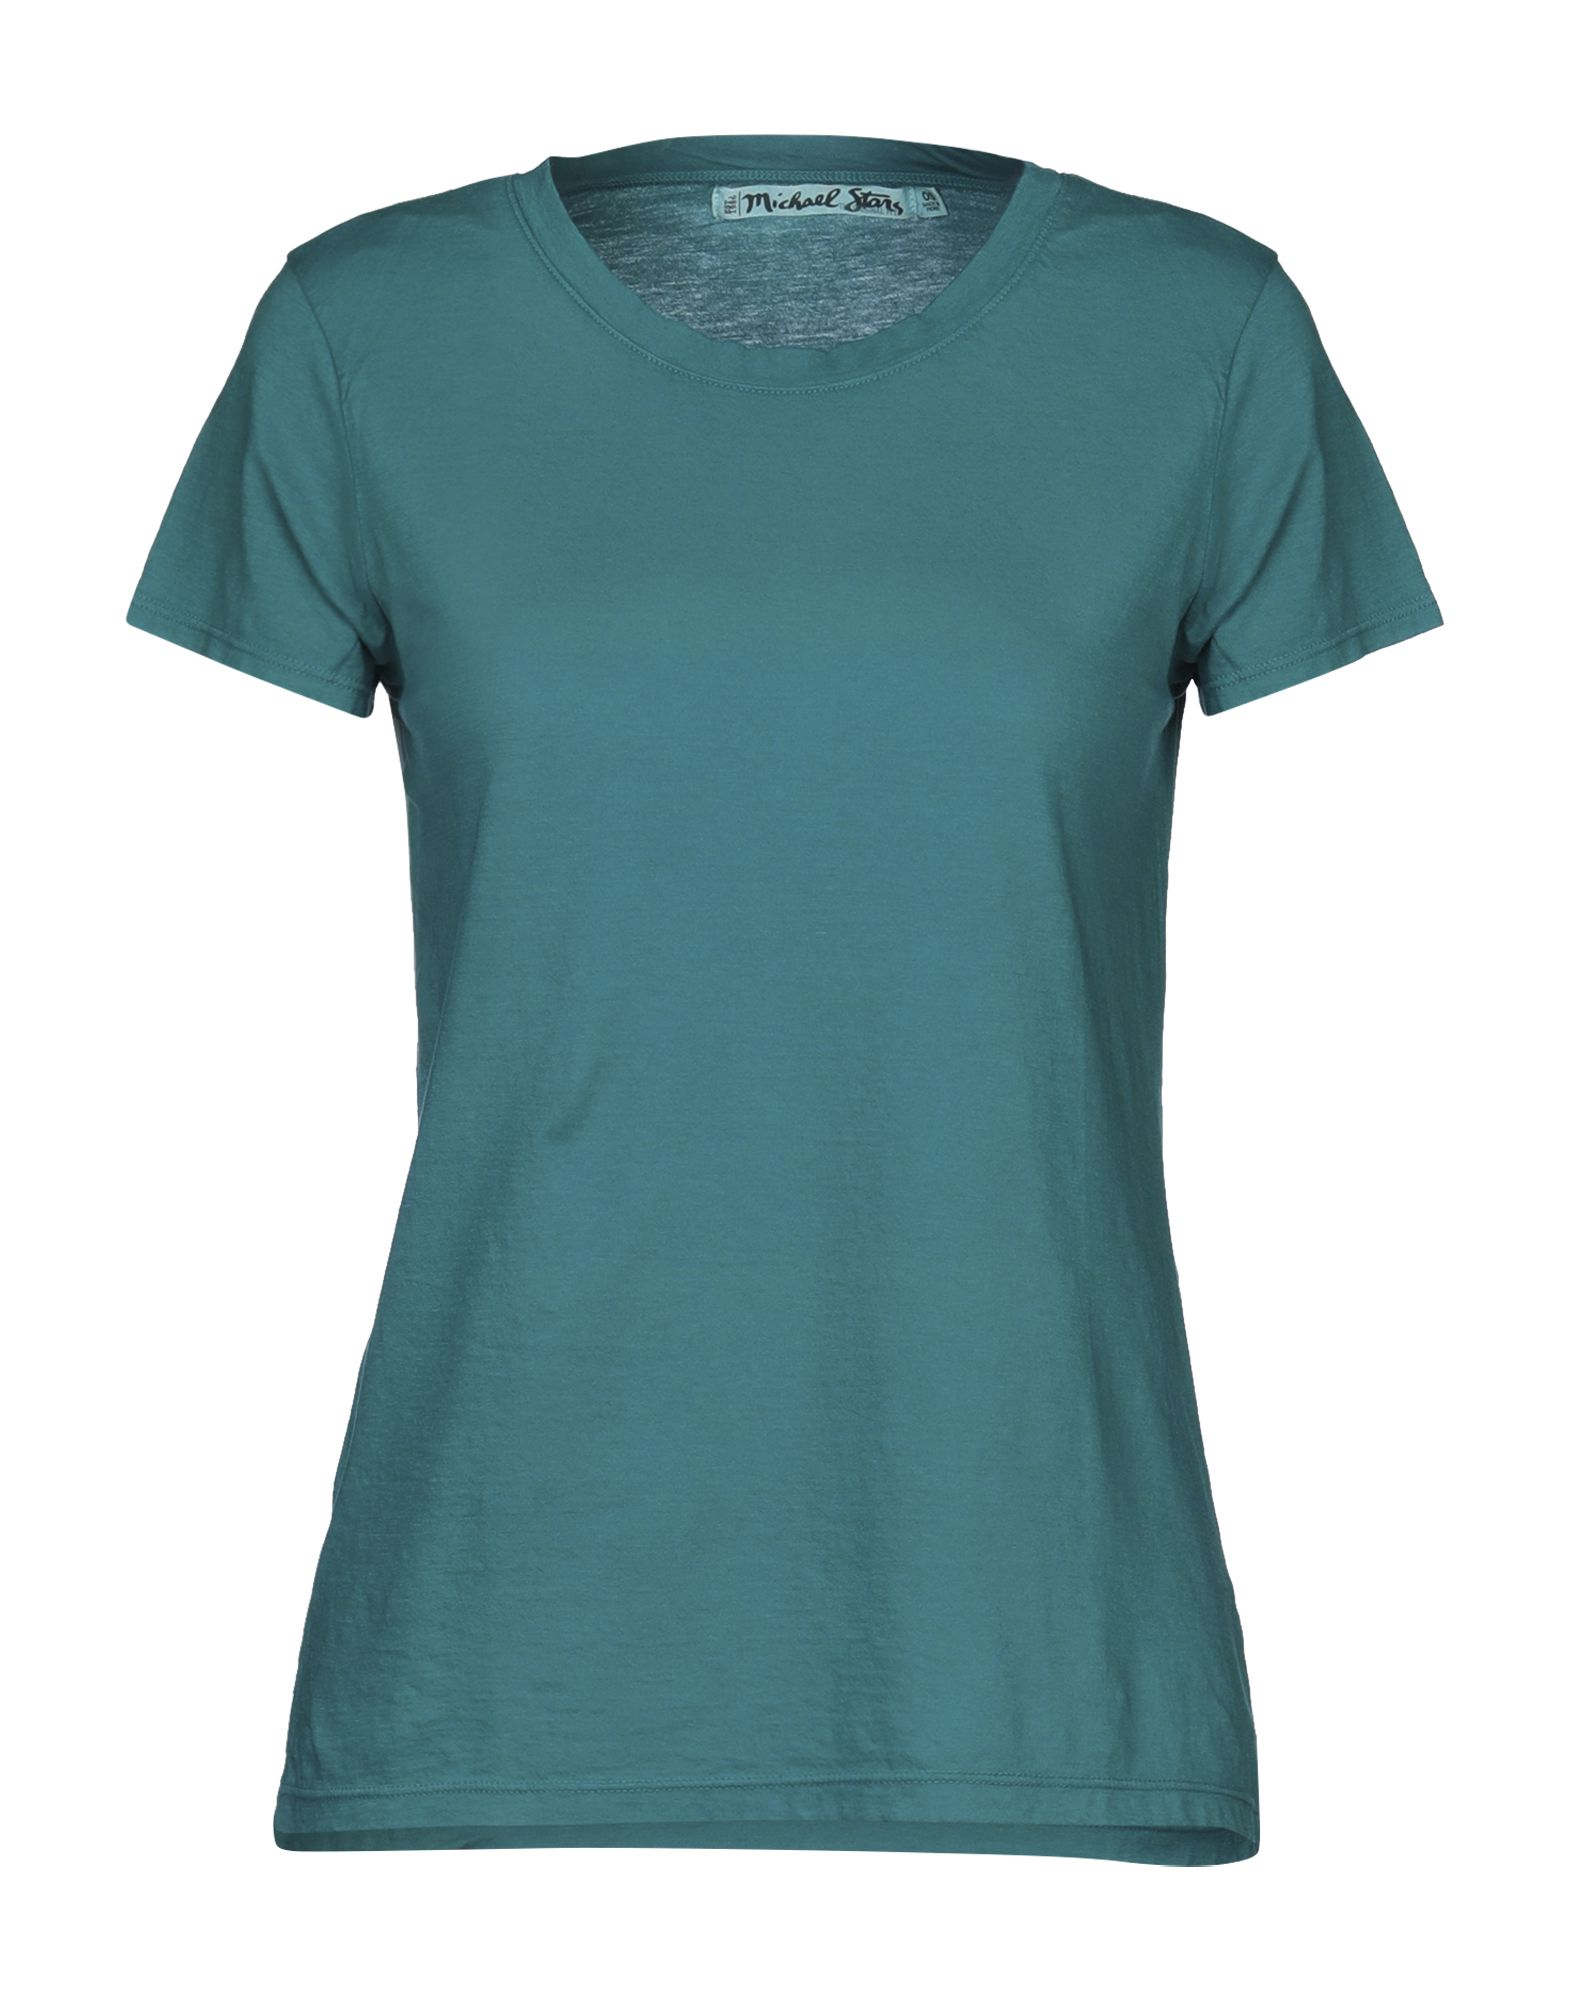 MICHAEL STARS T-shirts. jersey, no appliqués, basic solid color, round collar, short sleeves, no pockets. 100% Cotton